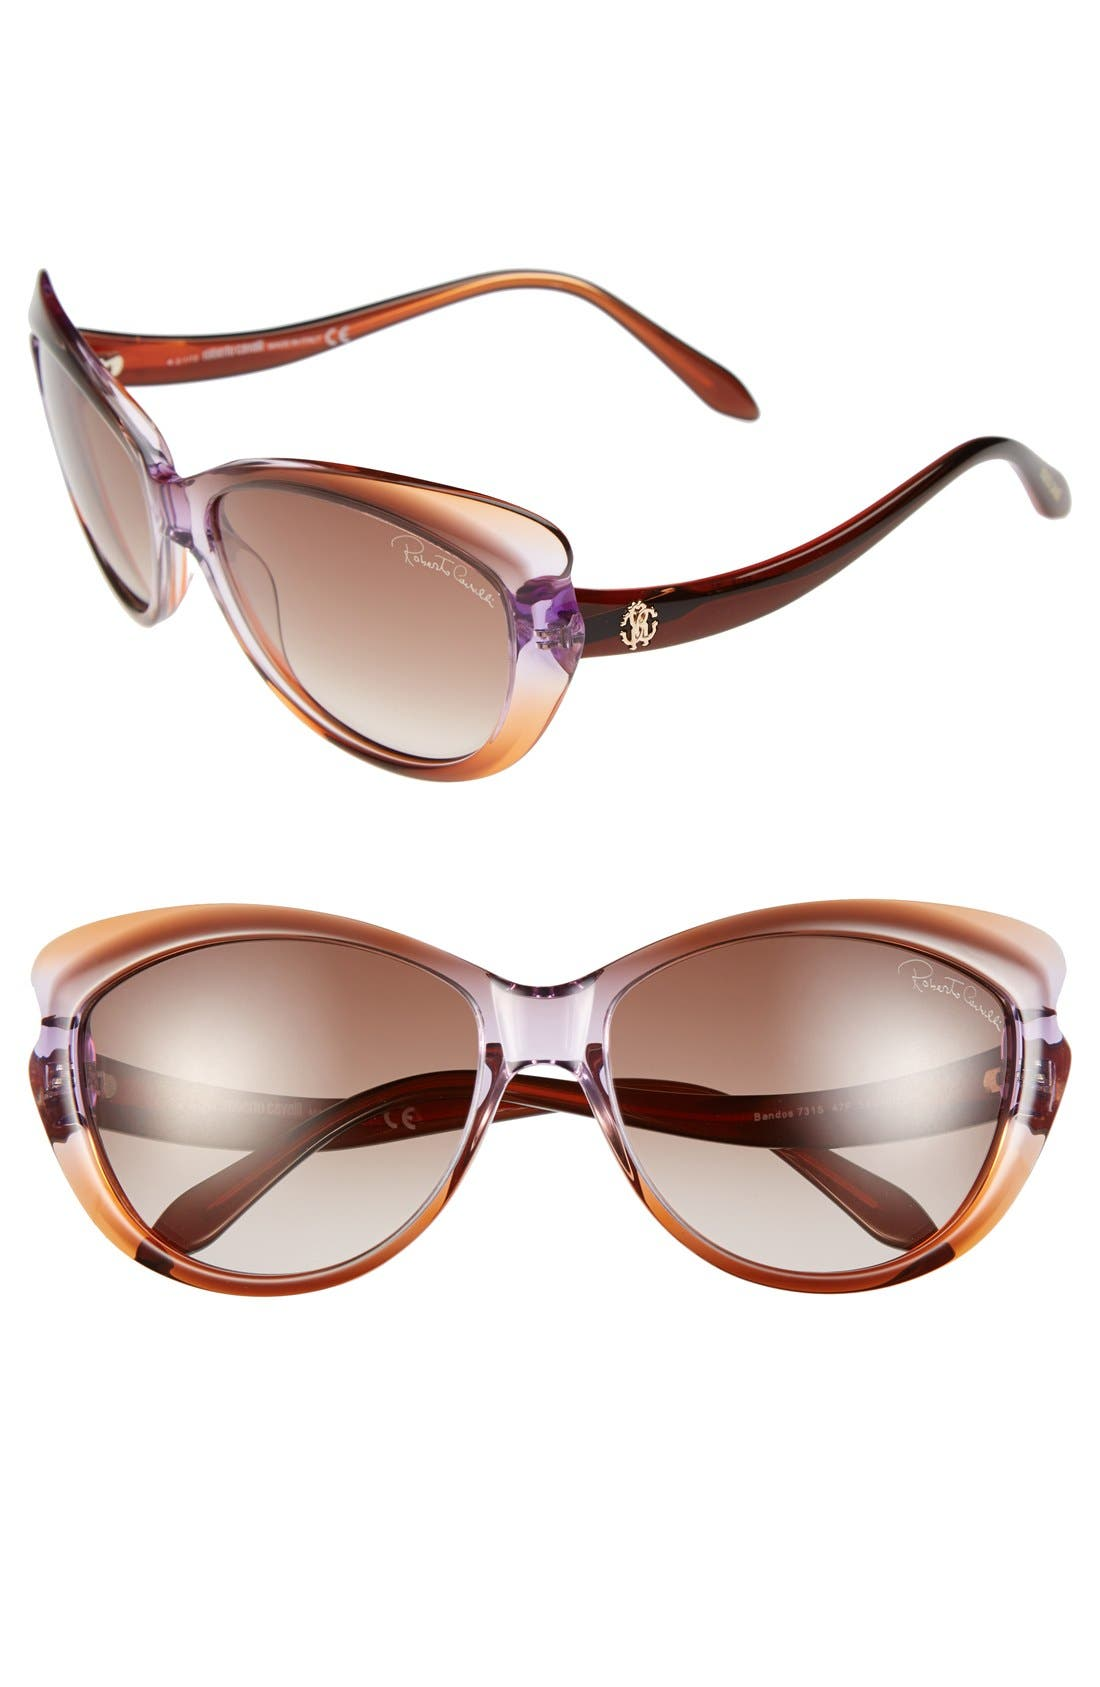 Main Image - Roberto Cavalli 59mm Sunglasses